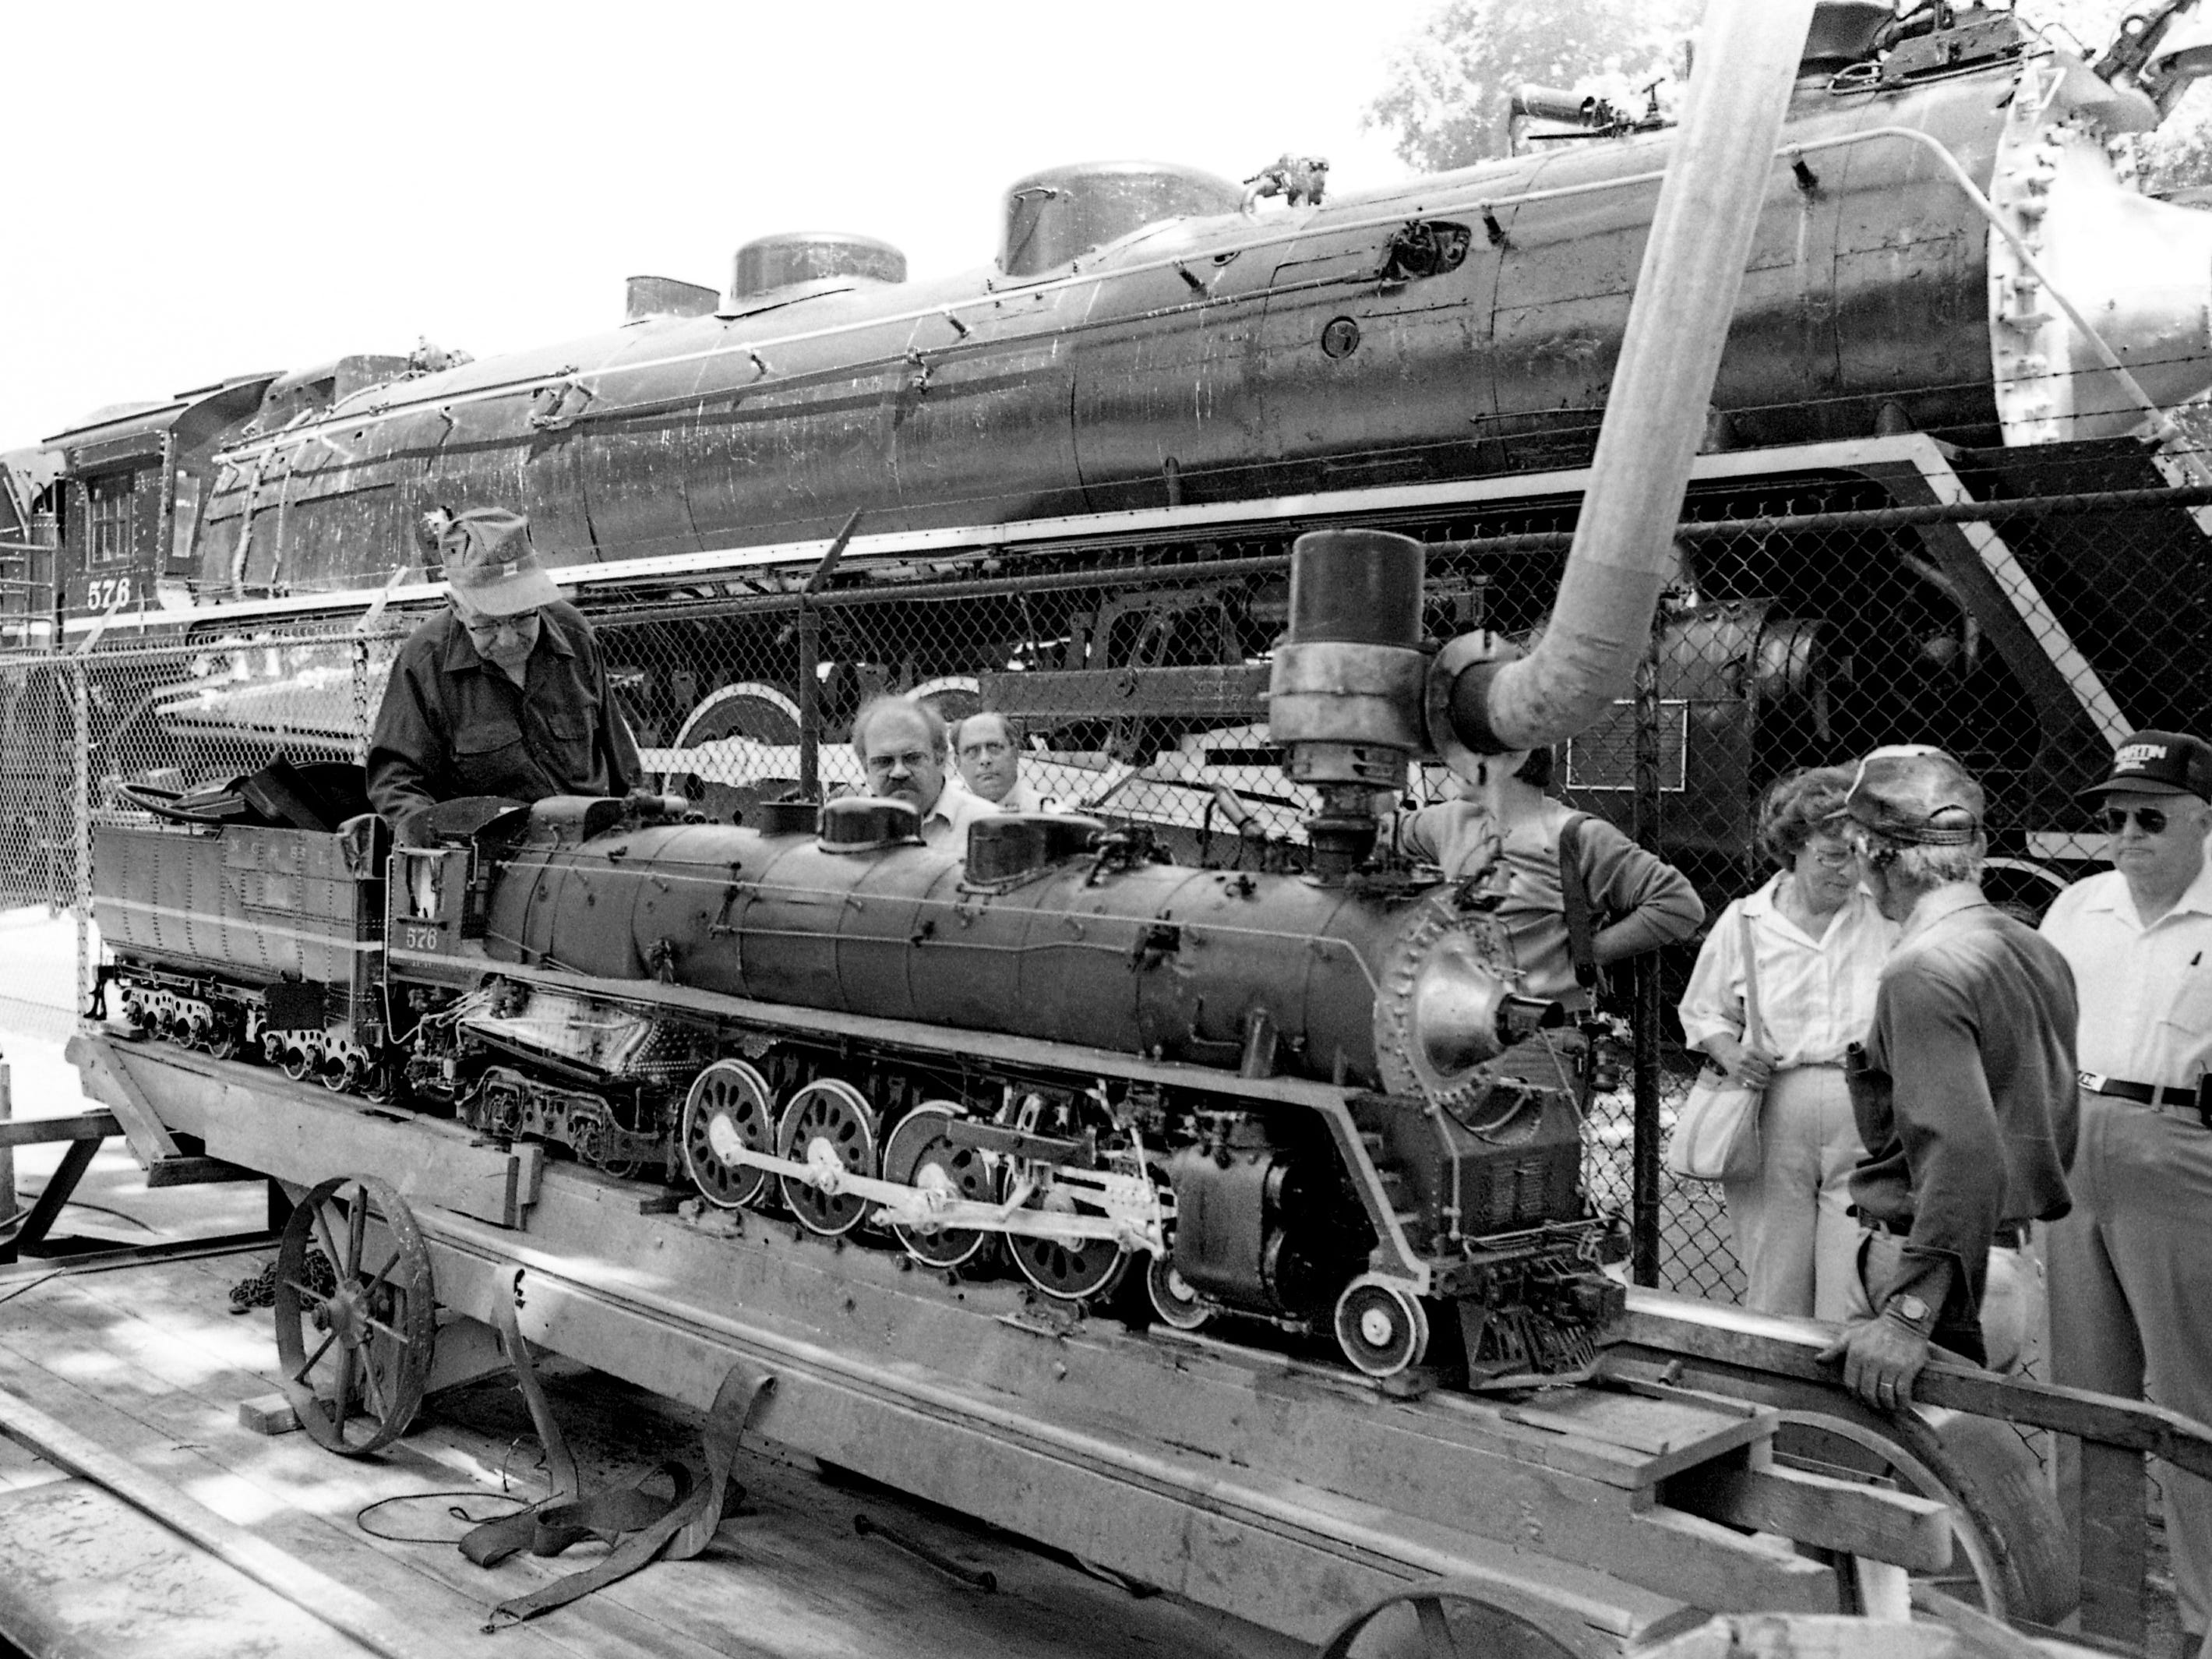 Cheatham County train buff Ernest Williams, 82, left, displays the scale model next to the real one, the Locomotive No. 576, on display at Centennial Park June 6, 1987. The Pleasant View, Tenn. resident says the nine years it took to make the model was a labor of love.